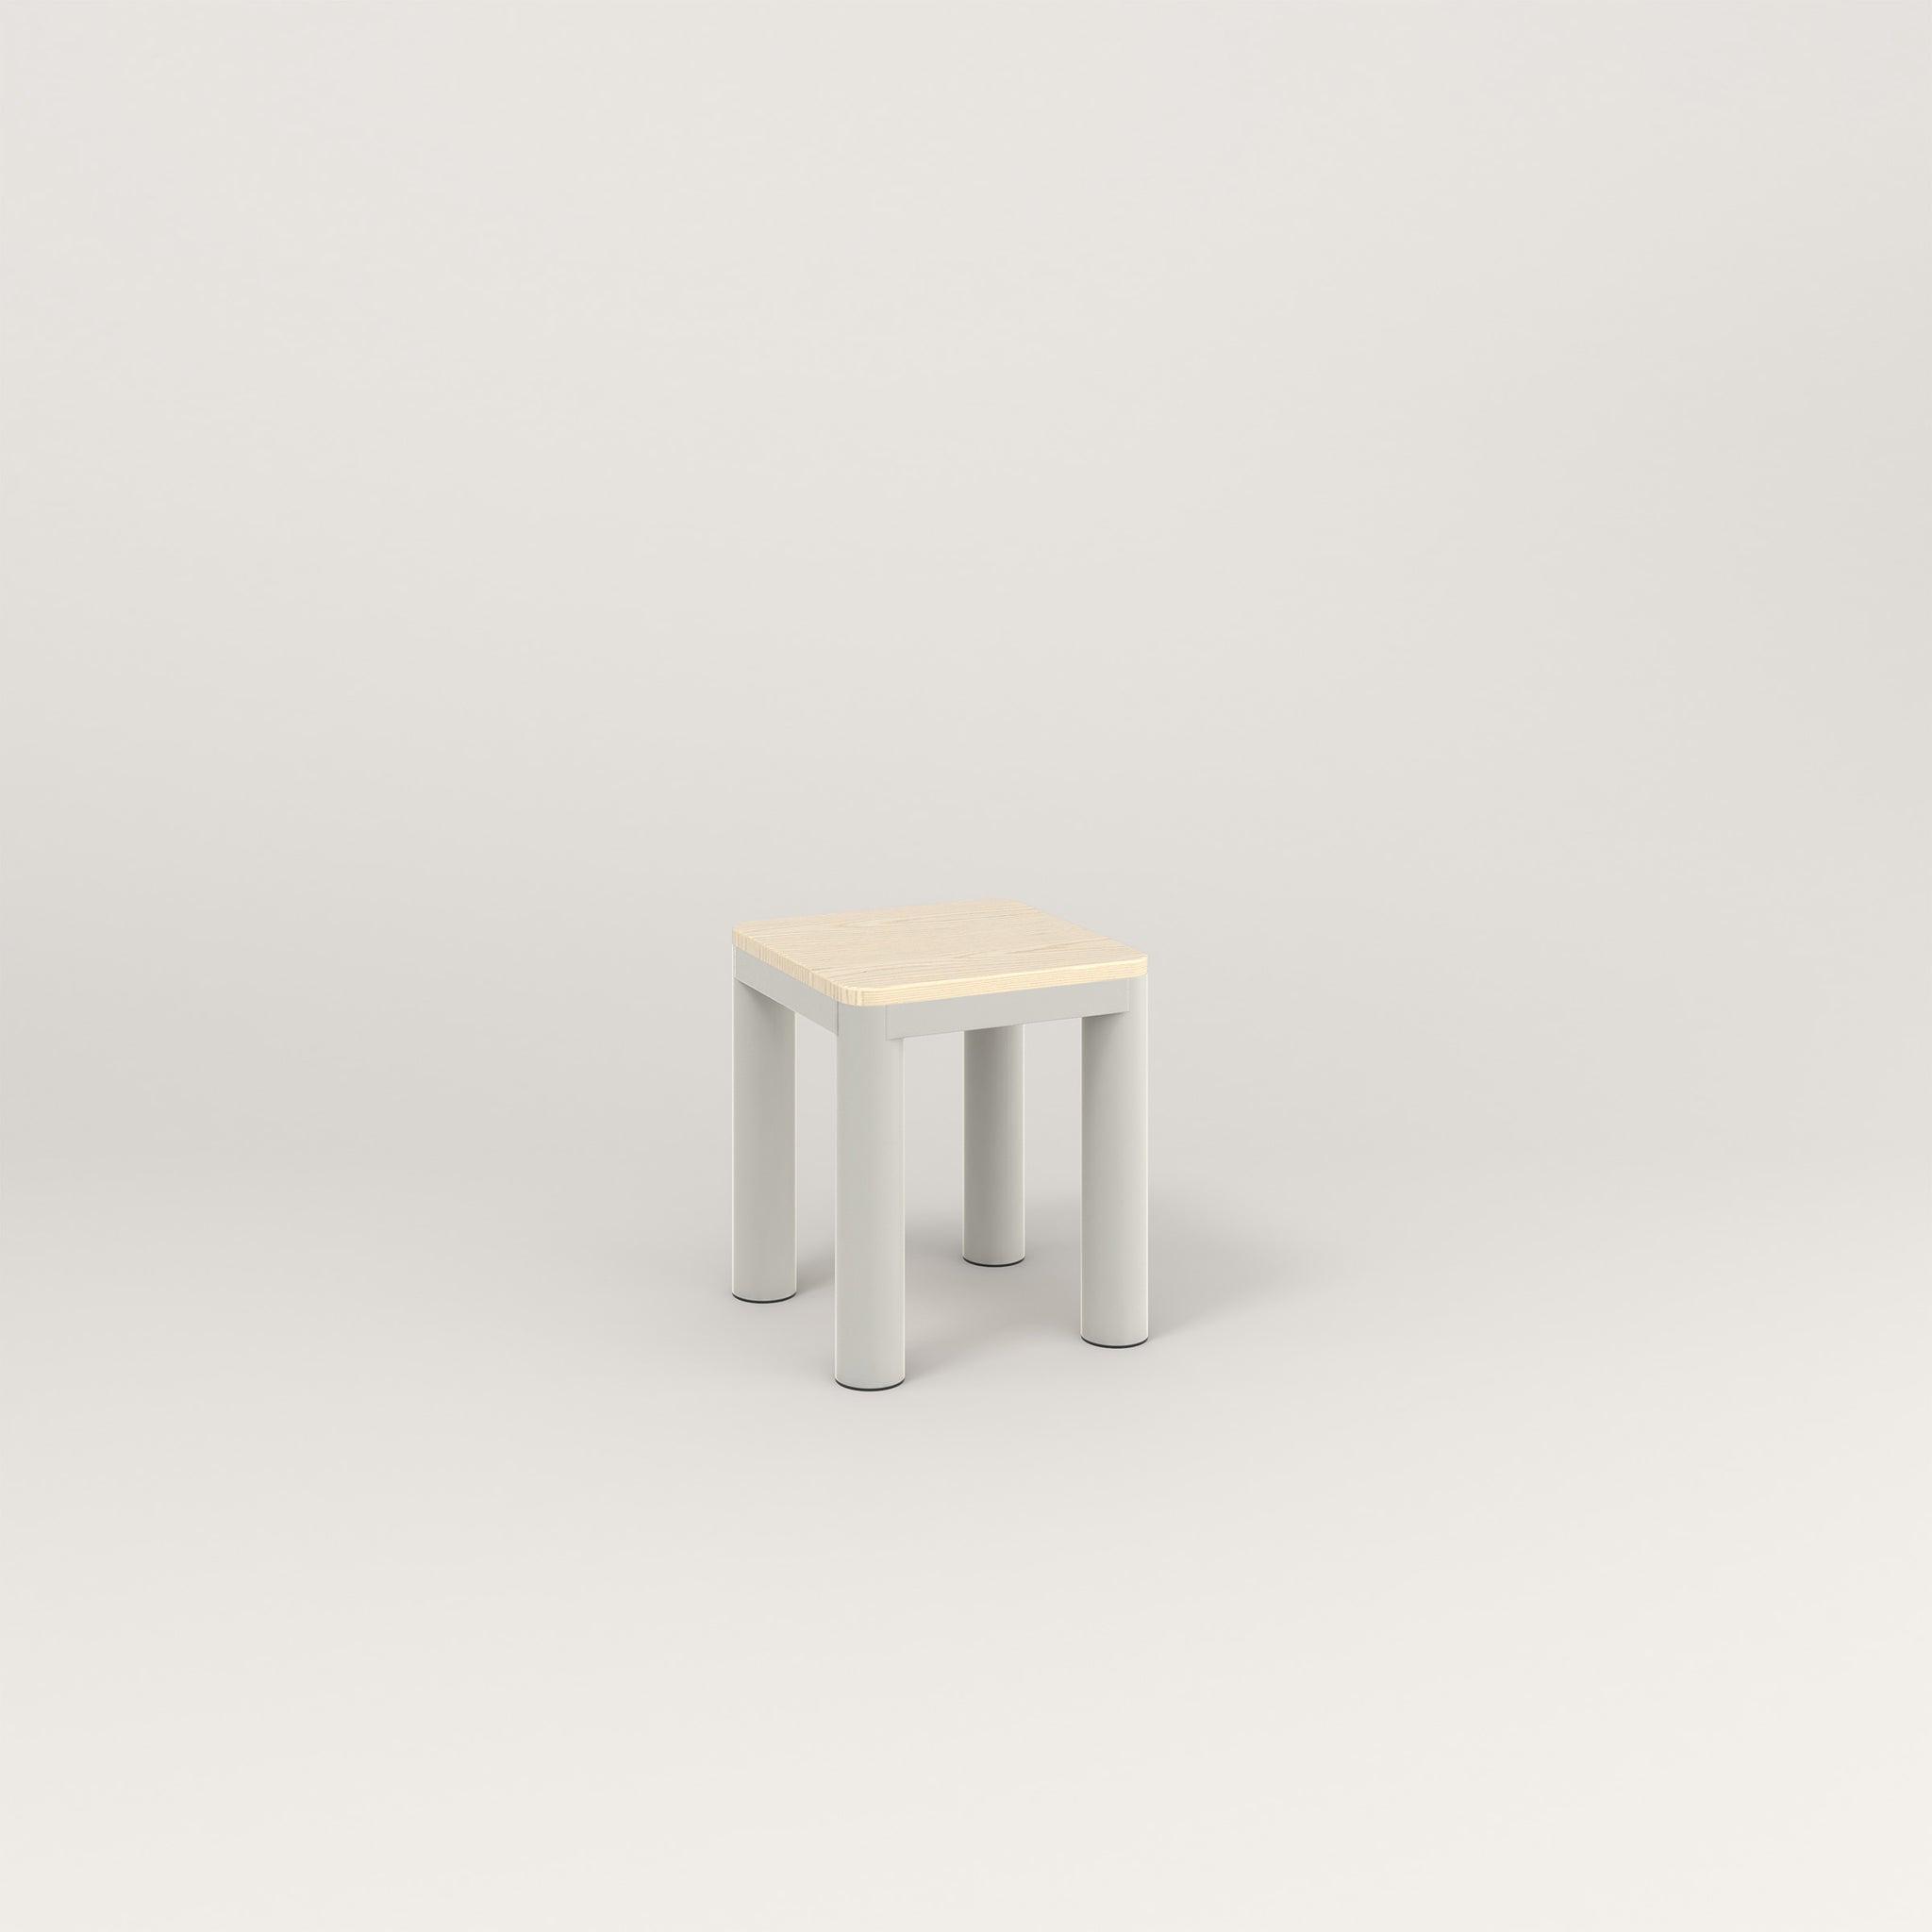 RAD Radius Simple Stool in solid ash and white powder coat.